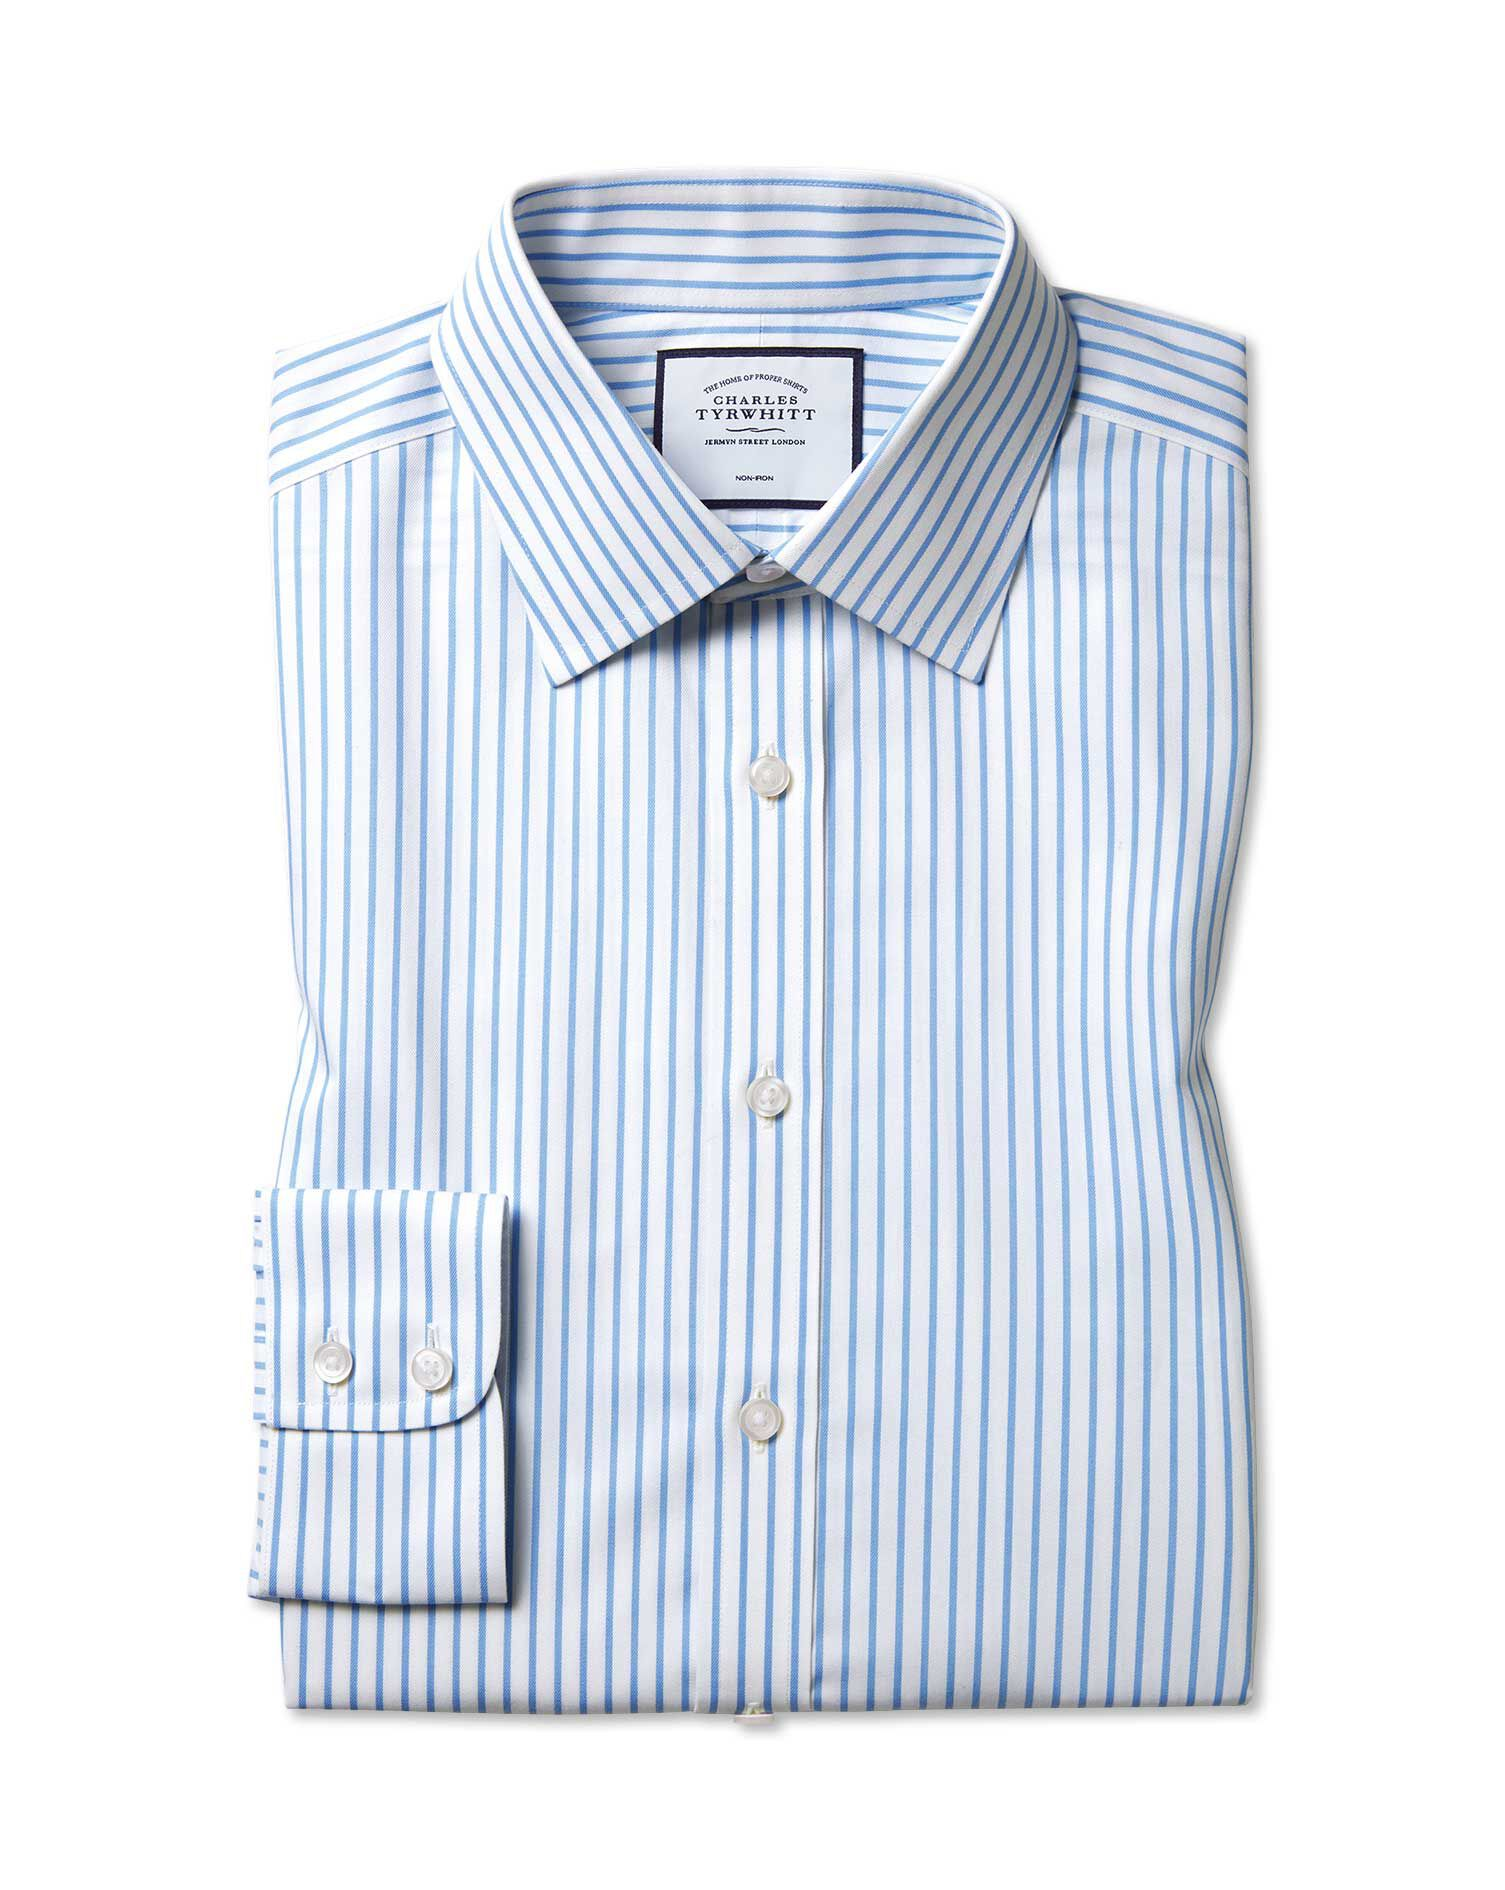 Slim Fit Non-Iron Twill White and Sky Blue Stripe Cotton Formal Shirt Single Cuff Size 14.5/32 by Ch